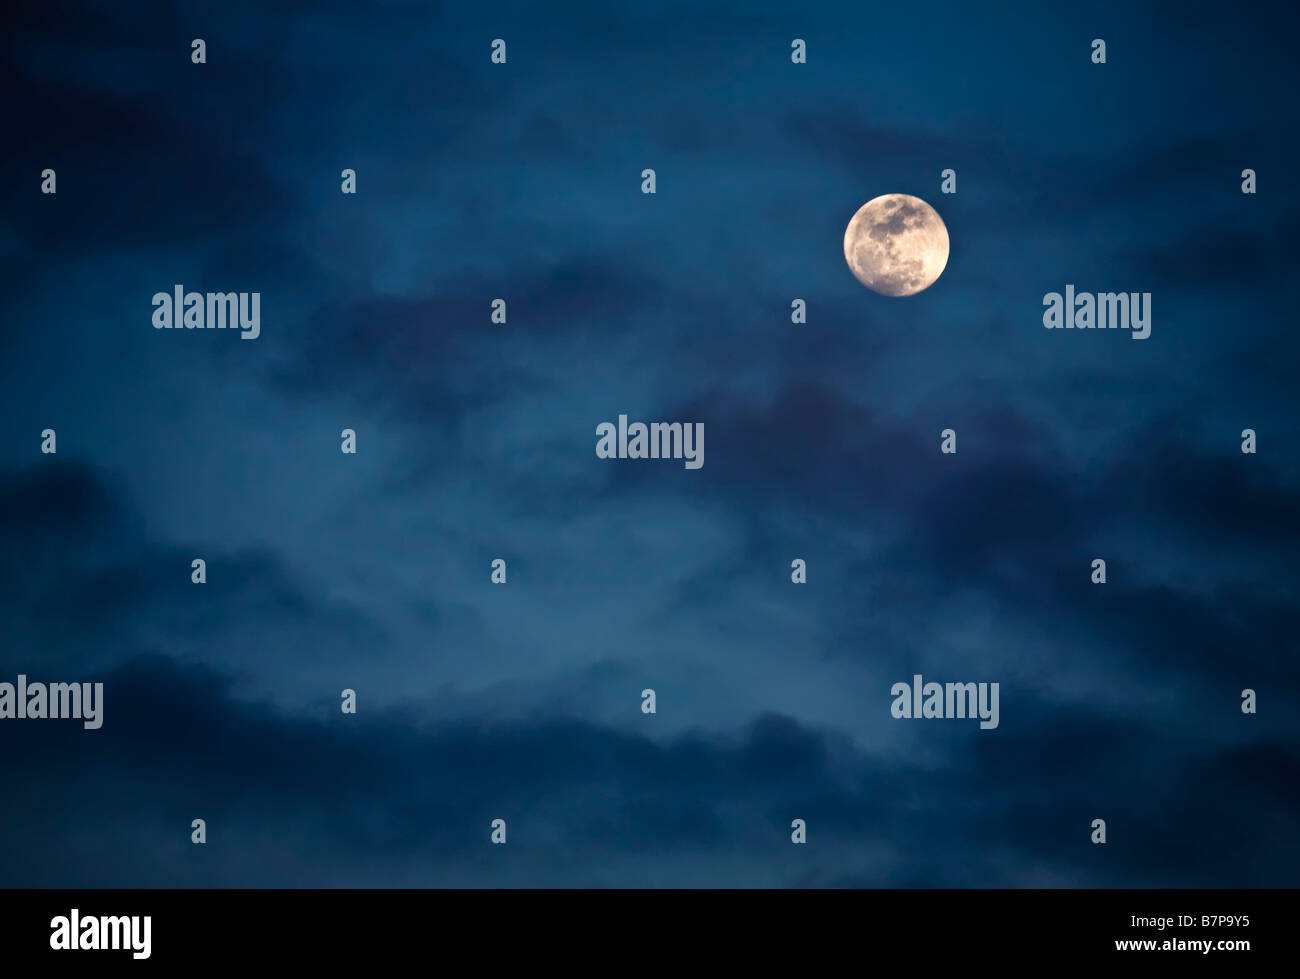 Moon seen through clouds - Stock Image